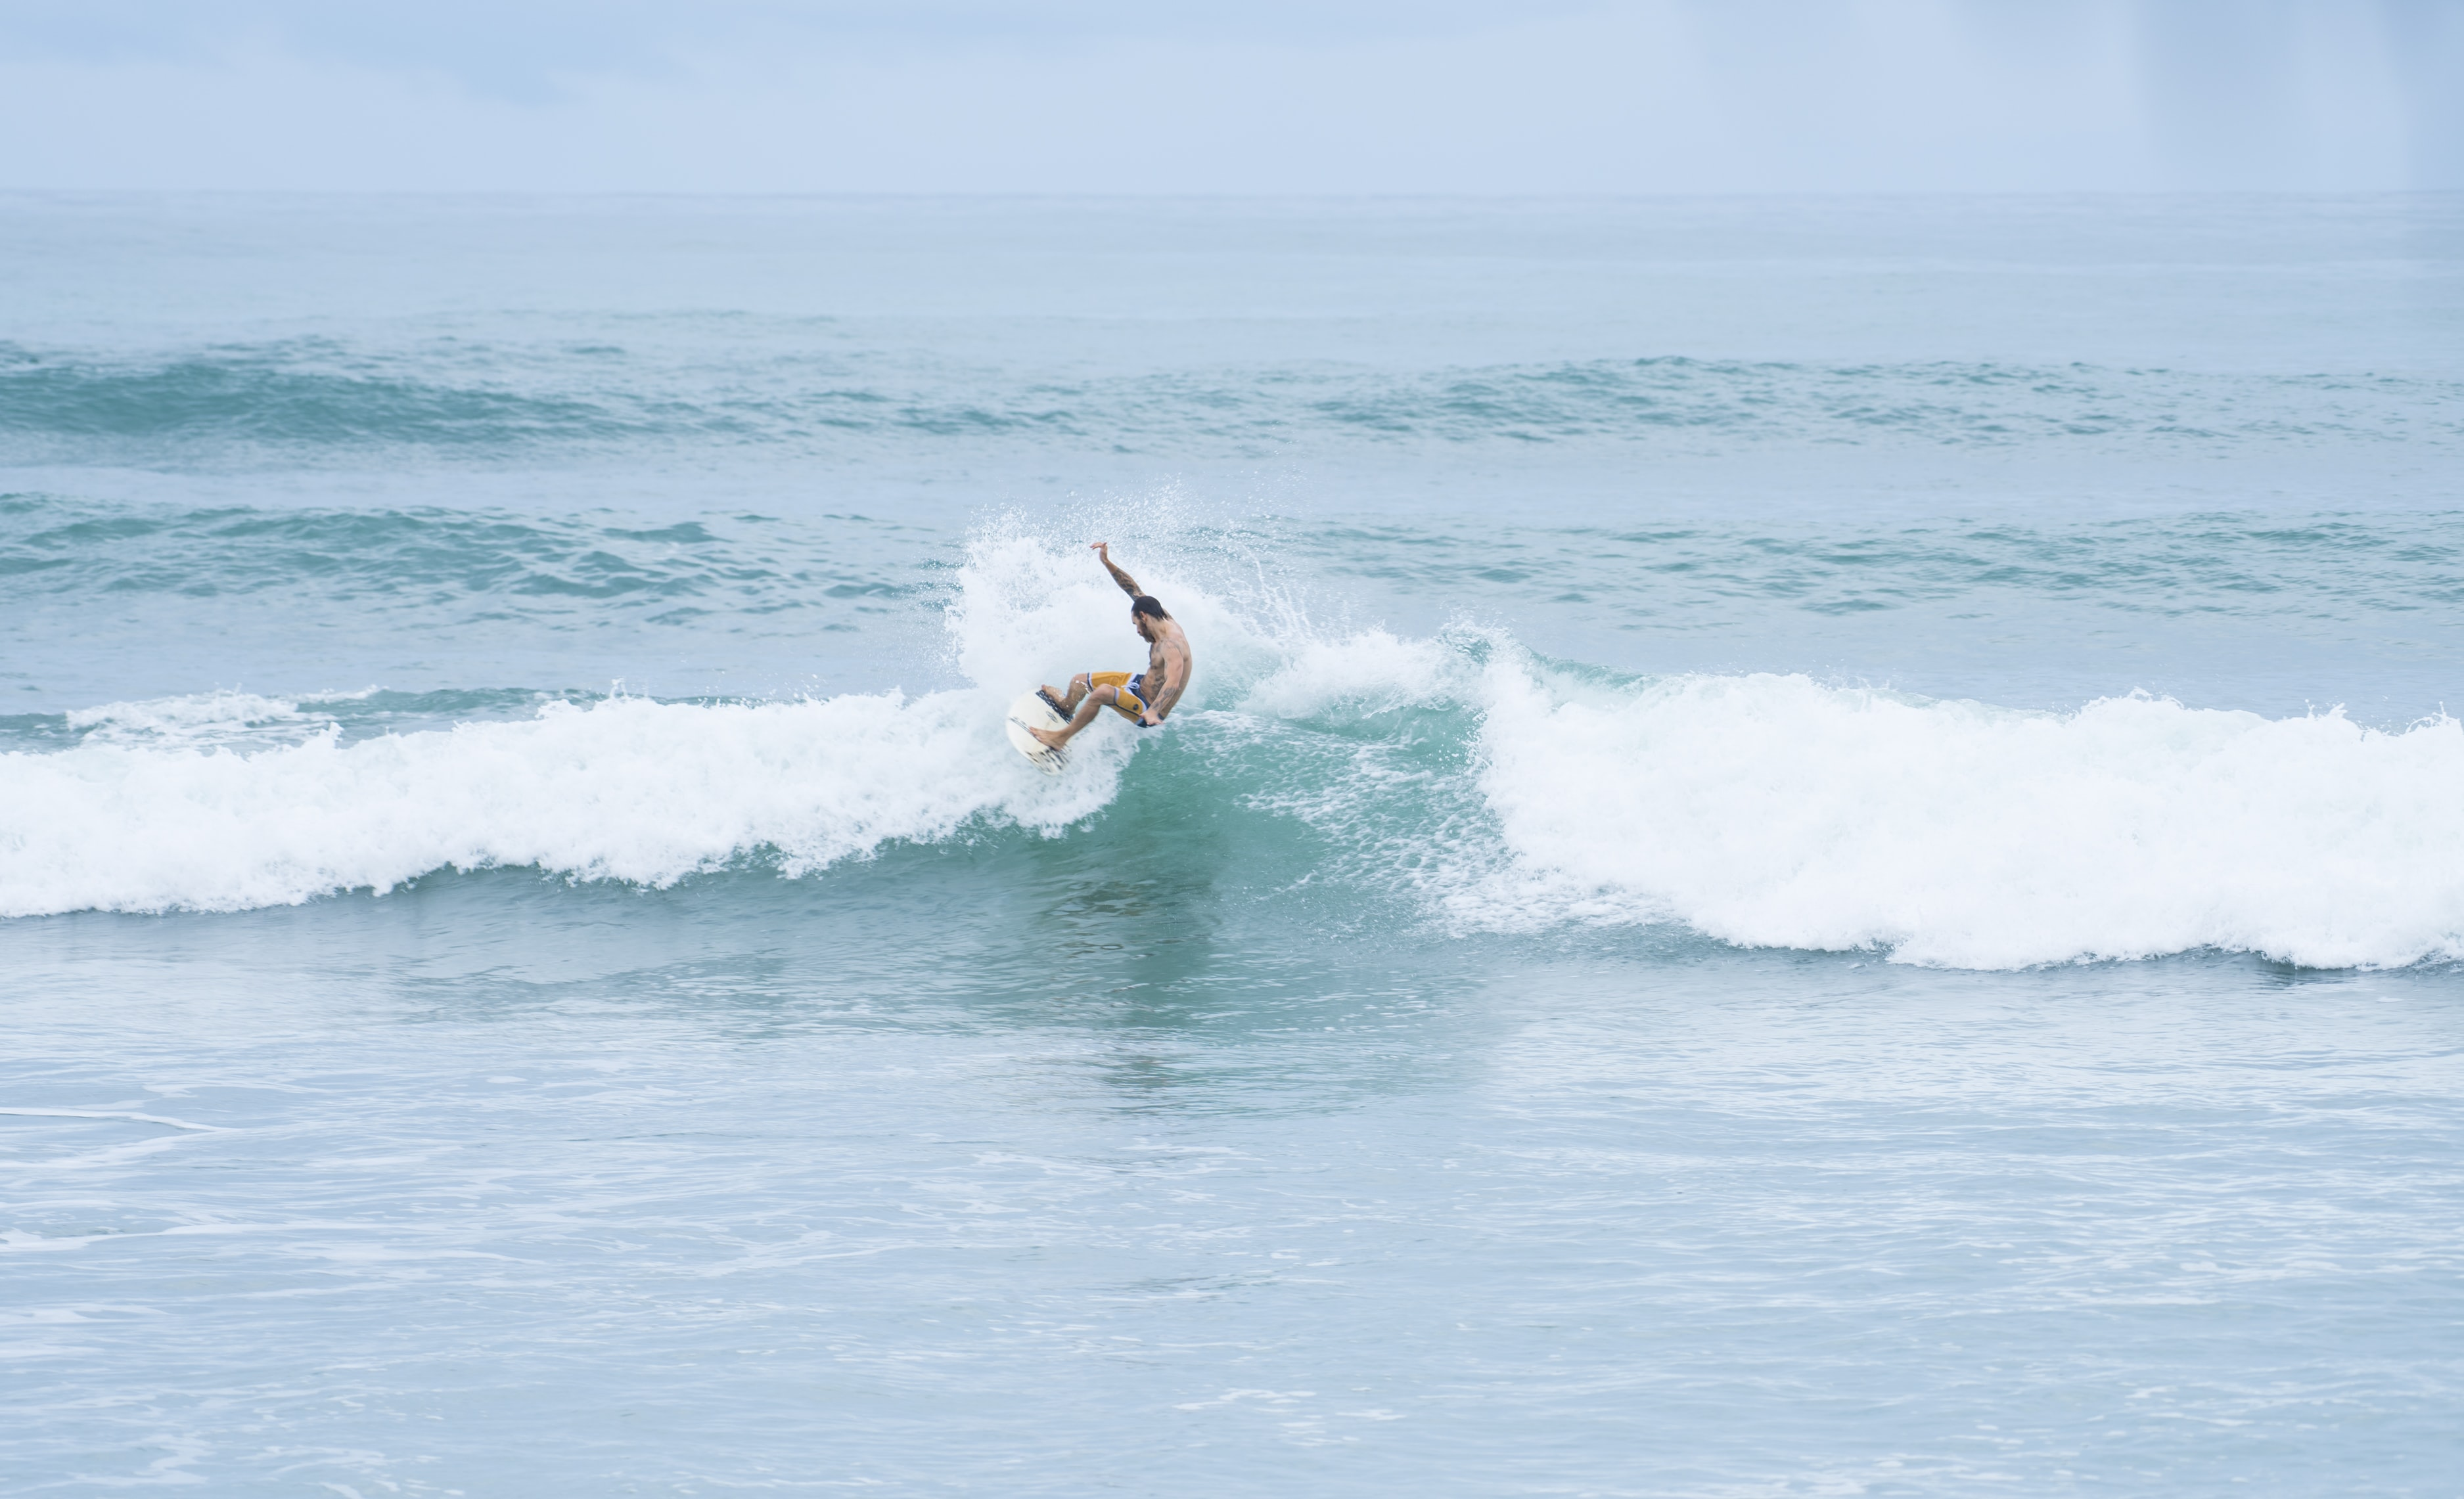 man riding a surfboard facing the waves on the ocean